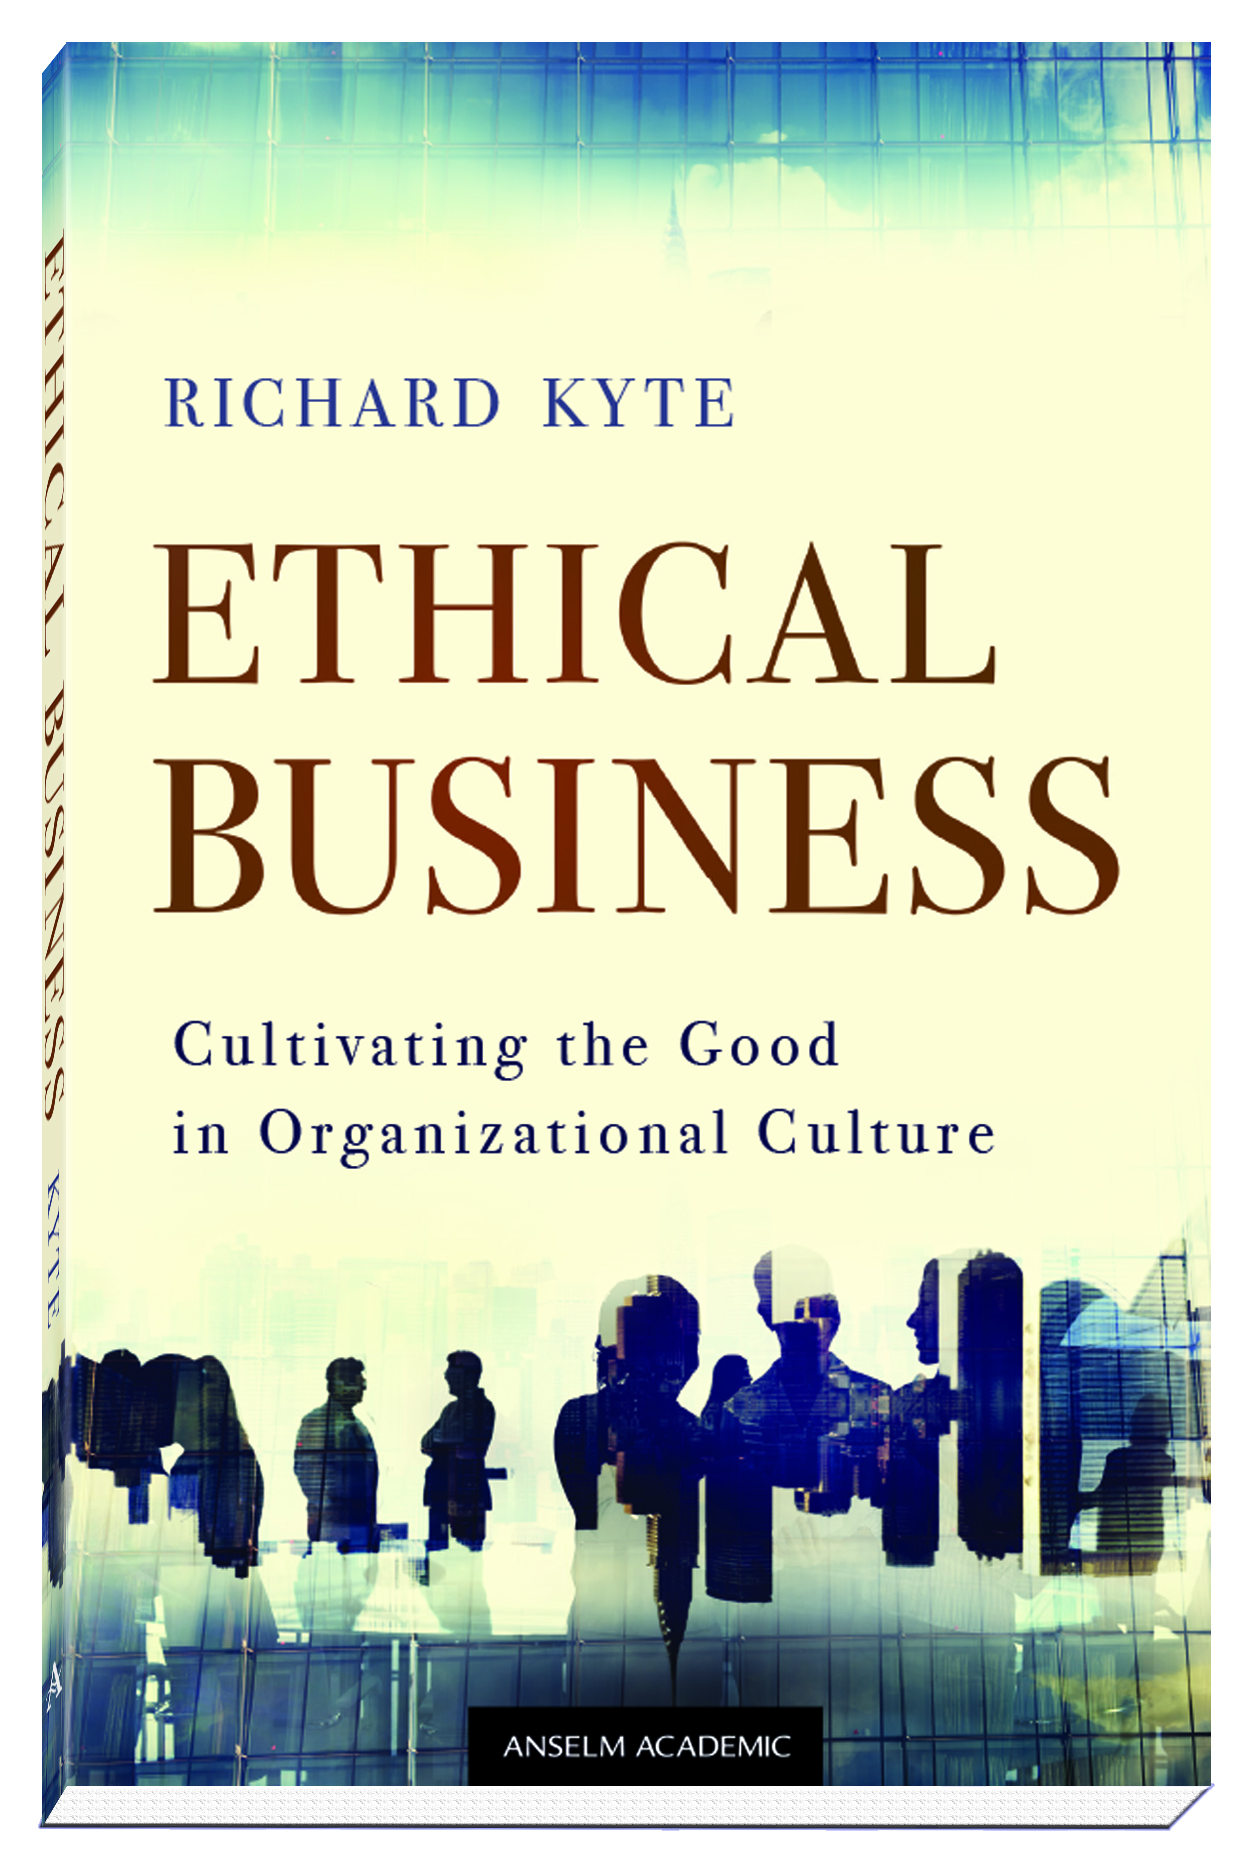 Ethical business anselm academic read an excerpt malvernweather Choice Image